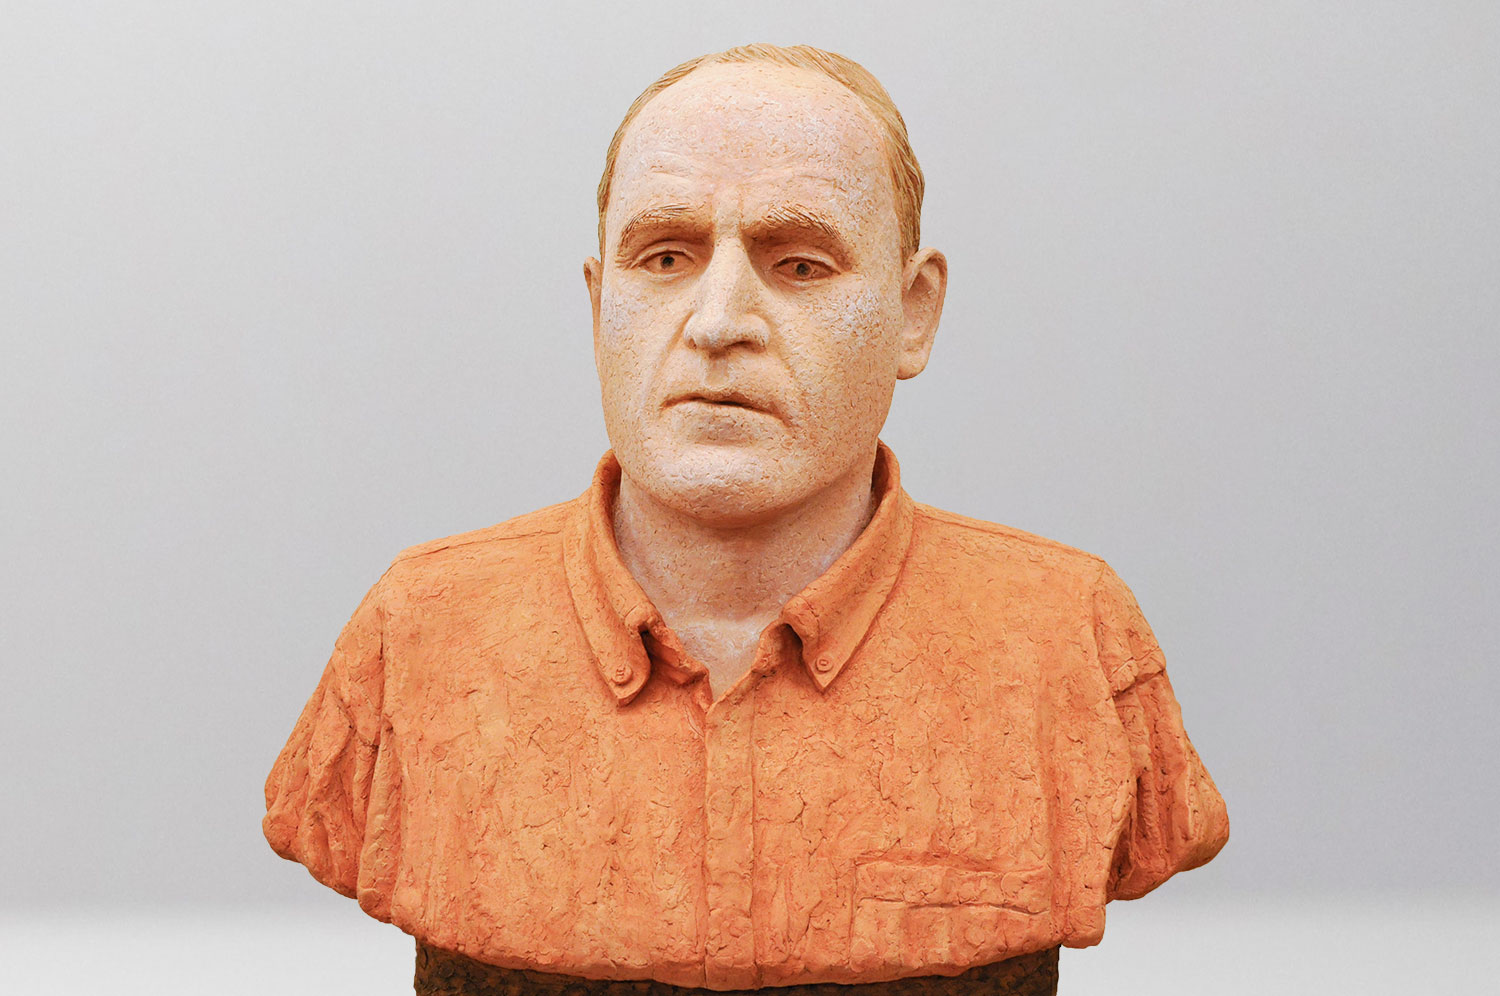 Anton Durnwalder in Terracotta